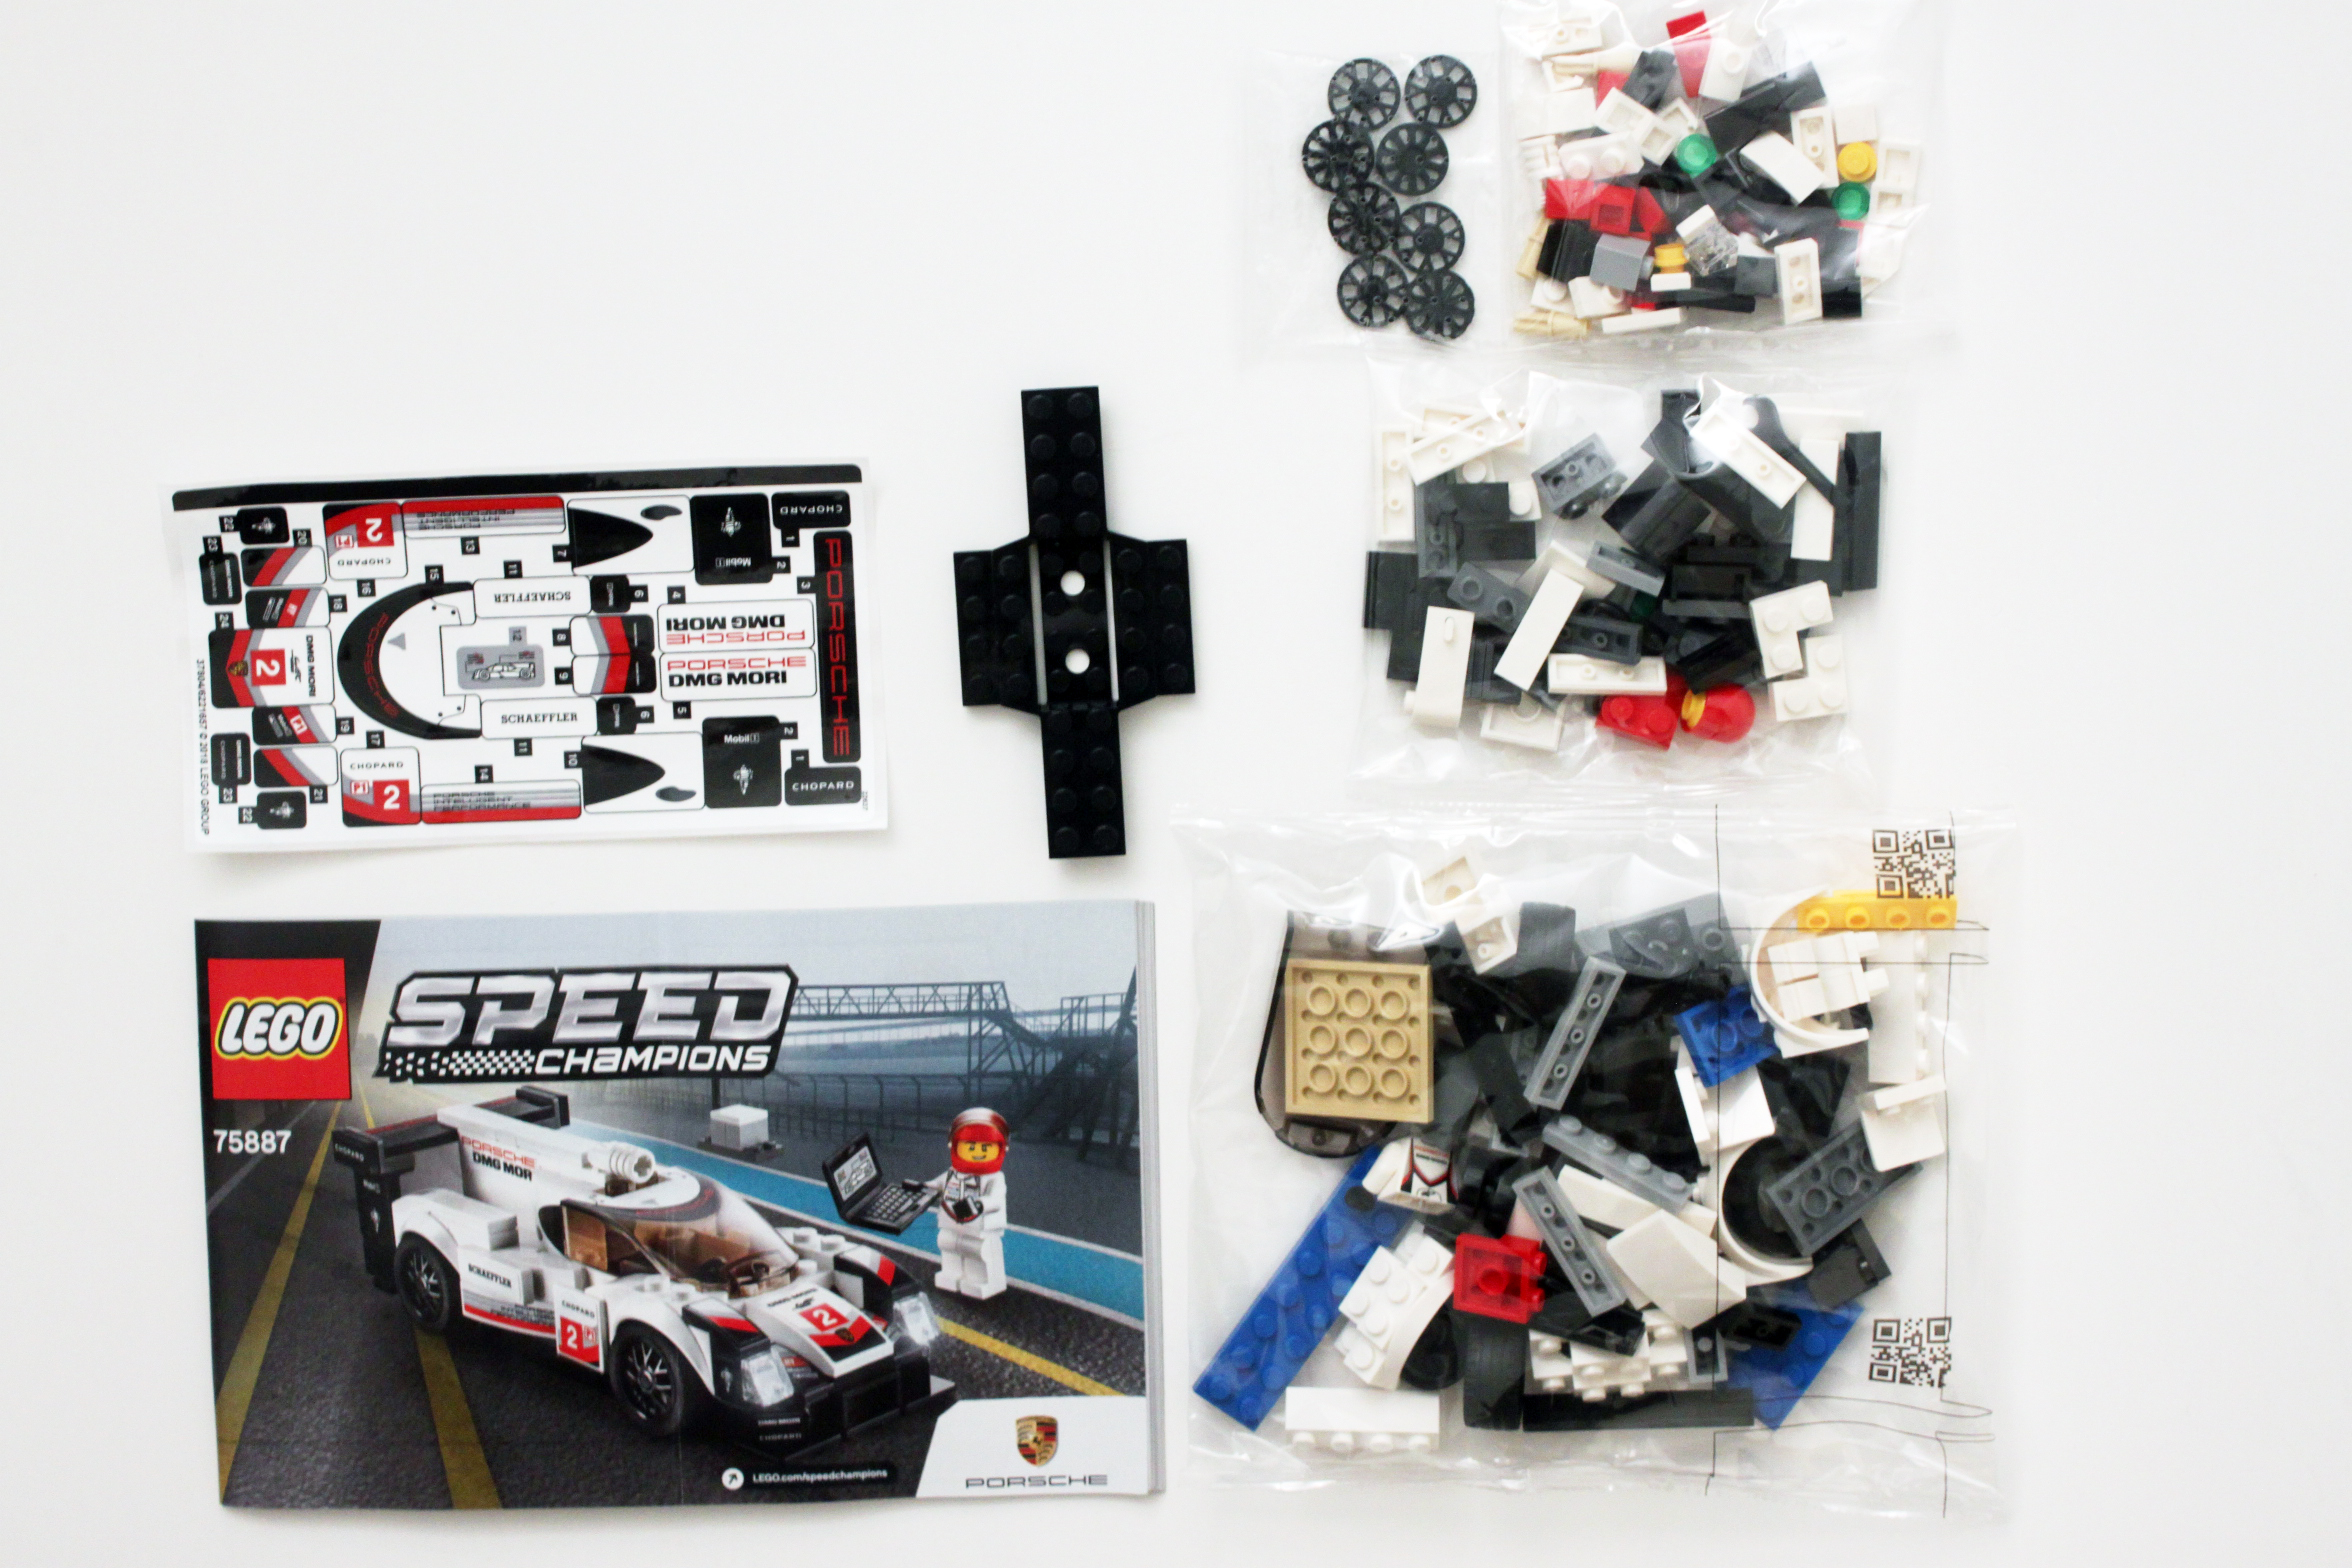 lego speed champions porsche 919 hybrid 75887 review the brick fan. Black Bedroom Furniture Sets. Home Design Ideas